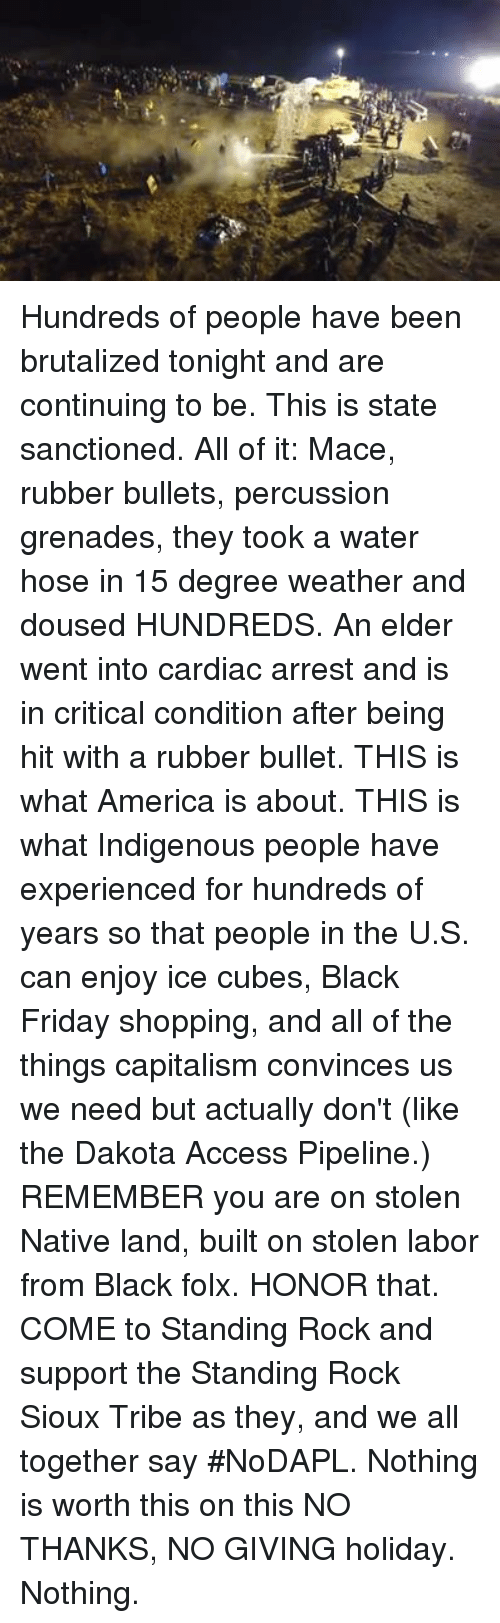 Black Friday, Ice Cube, and Memes: Hundreds of people have been brutalized tonight and are continuing to be. This is state sanctioned. All of it: Mace, rubber bullets, percussion grenades, they took a water hose in 15 degree weather and doused HUNDREDS. An elder went into cardiac arrest and is in critical condition after being hit with a rubber bullet. THIS is what America is about. THIS is what Indigenous people have experienced for hundreds of years so that people in the U.S. can enjoy ice cubes, Black Friday shopping, and all of the things capitalism convinces us we need but actually don't (like the Dakota Access Pipeline.)   REMEMBER you are on stolen Native land, built on stolen labor from Black folx.   HONOR that.   COME to Standing Rock and support the Standing Rock Sioux Tribe as they, and we all together say #NoDAPL. Nothing is worth this on this NO THANKS, NO GIVING holiday. Nothing.